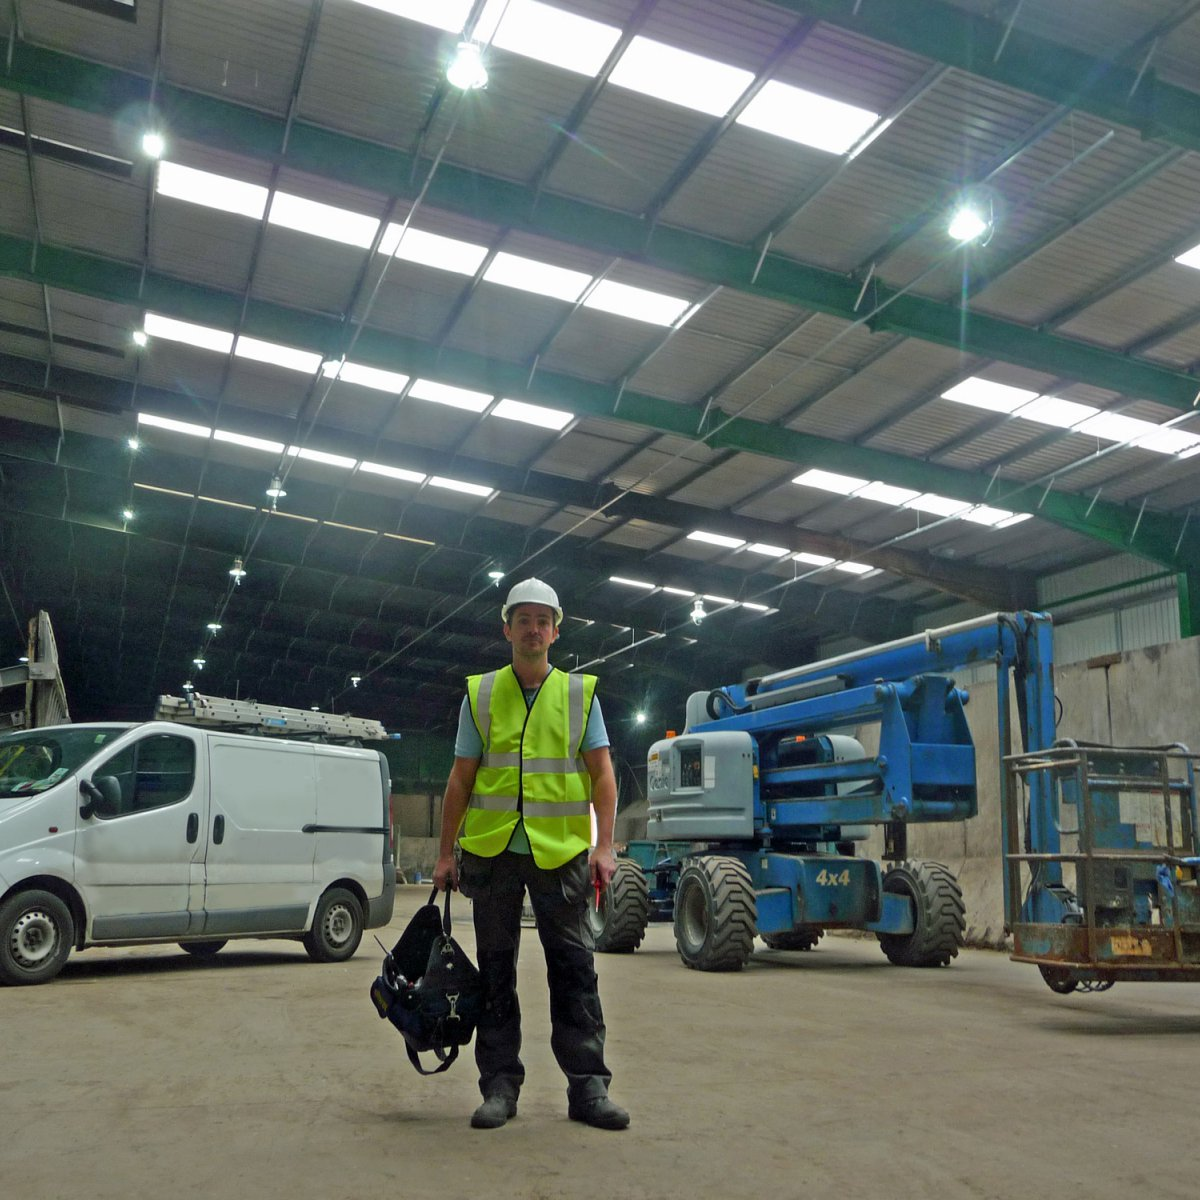 Commercial Lighting Installers: Support For Commercial Lighting